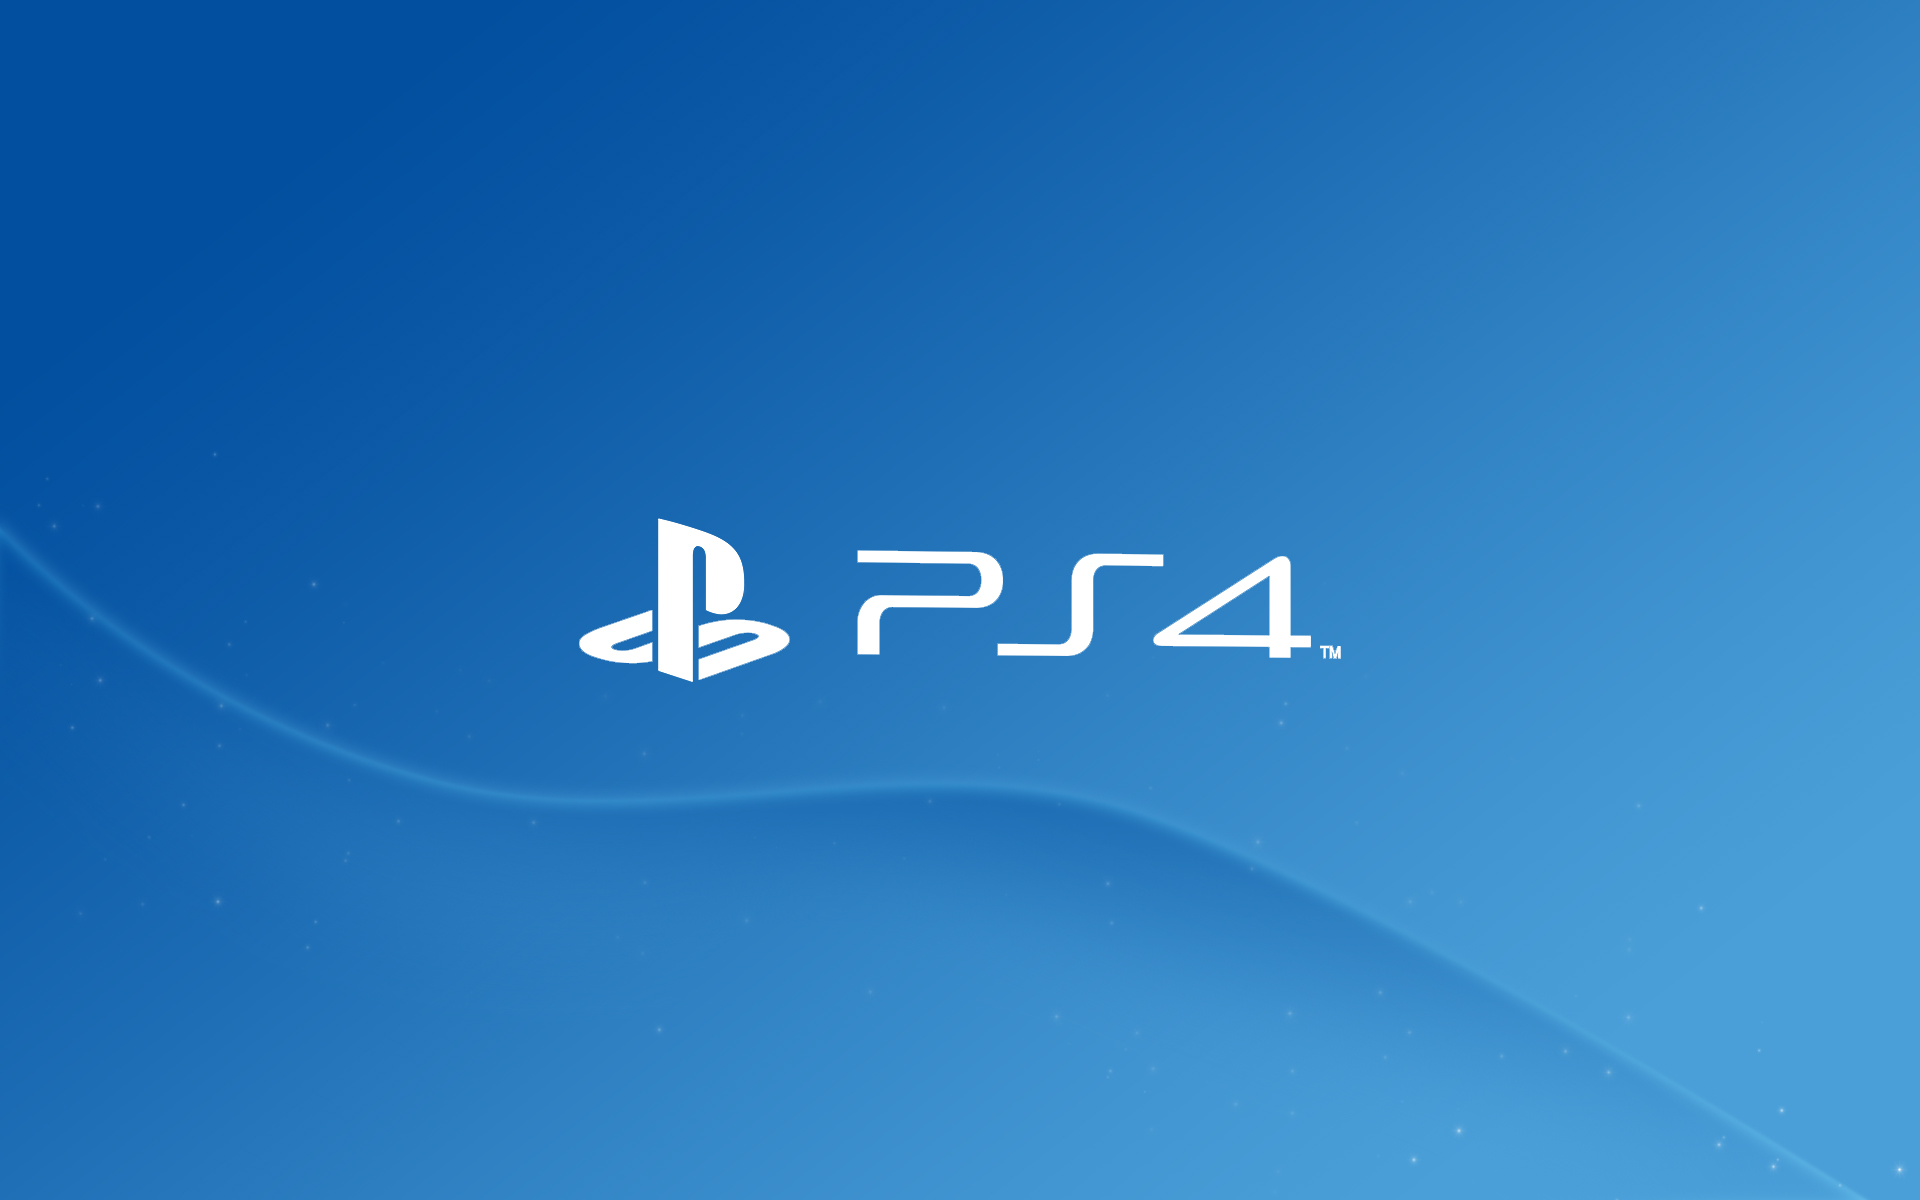 ps4 official wallpaper 02 - photo #31